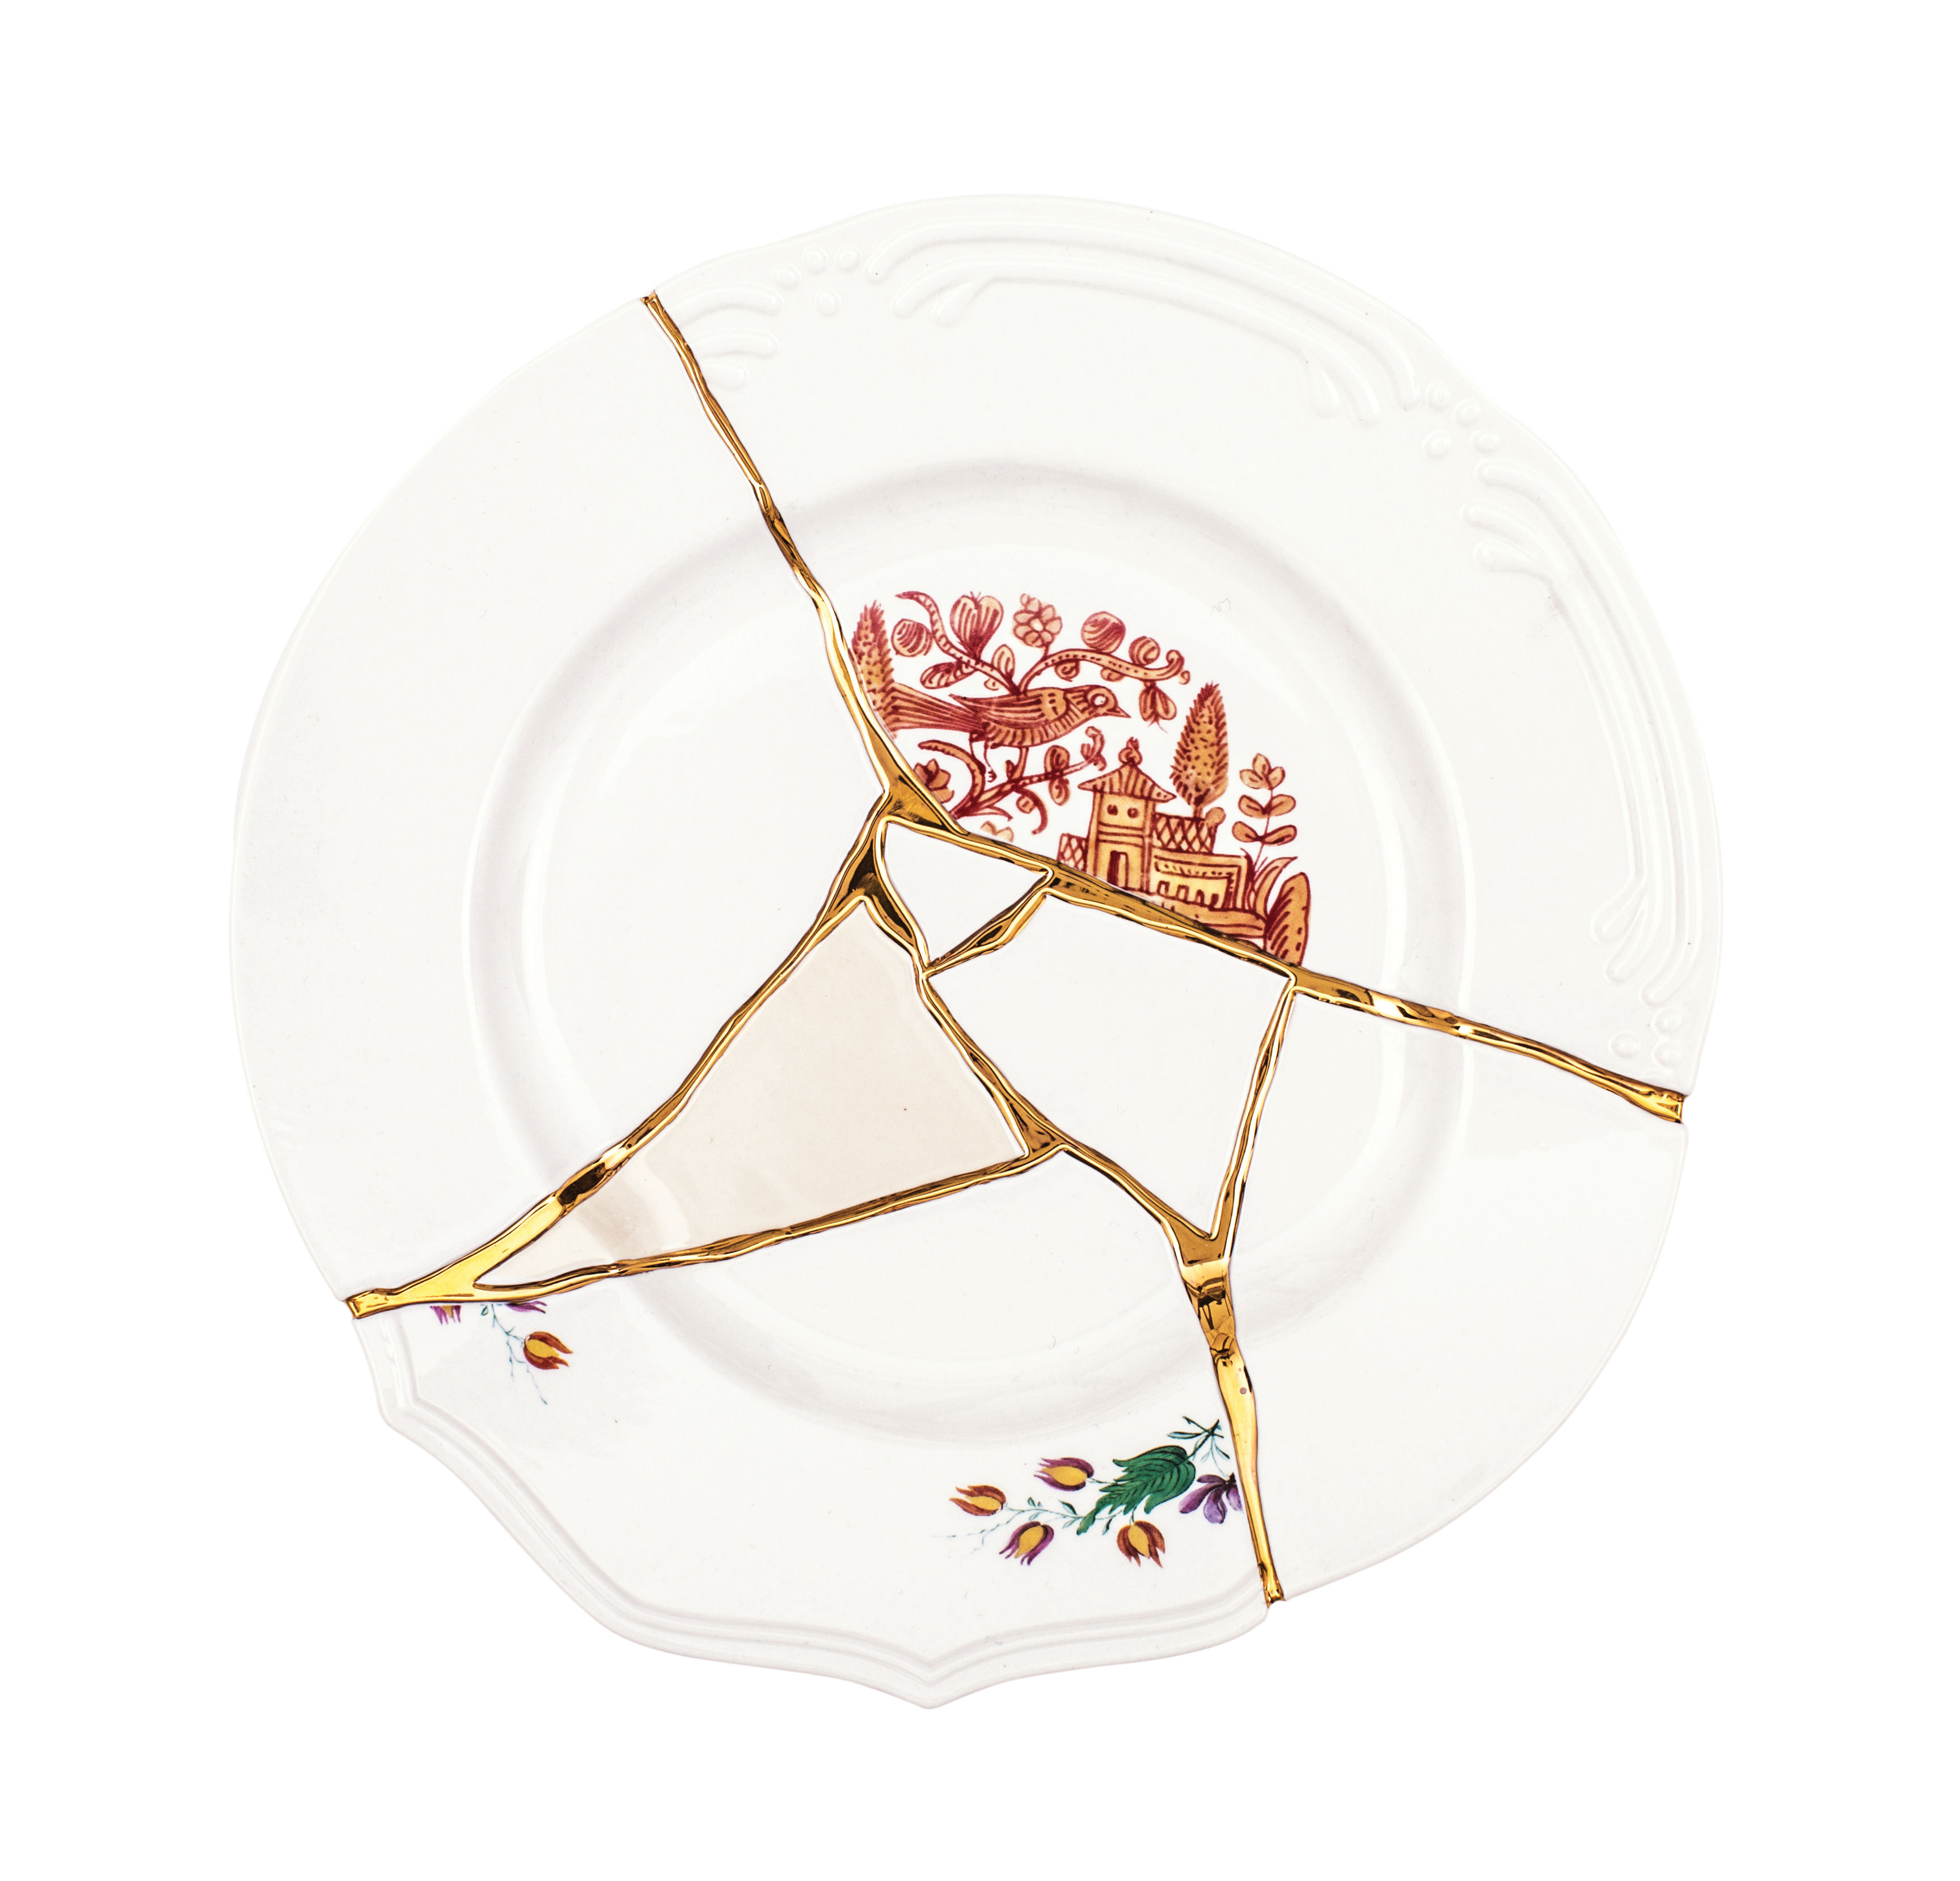 Tableware - Plates - Kintsugi Plate - / Porcelain & gold finish by Seletti - White & gold / Red patterns - China, Gold